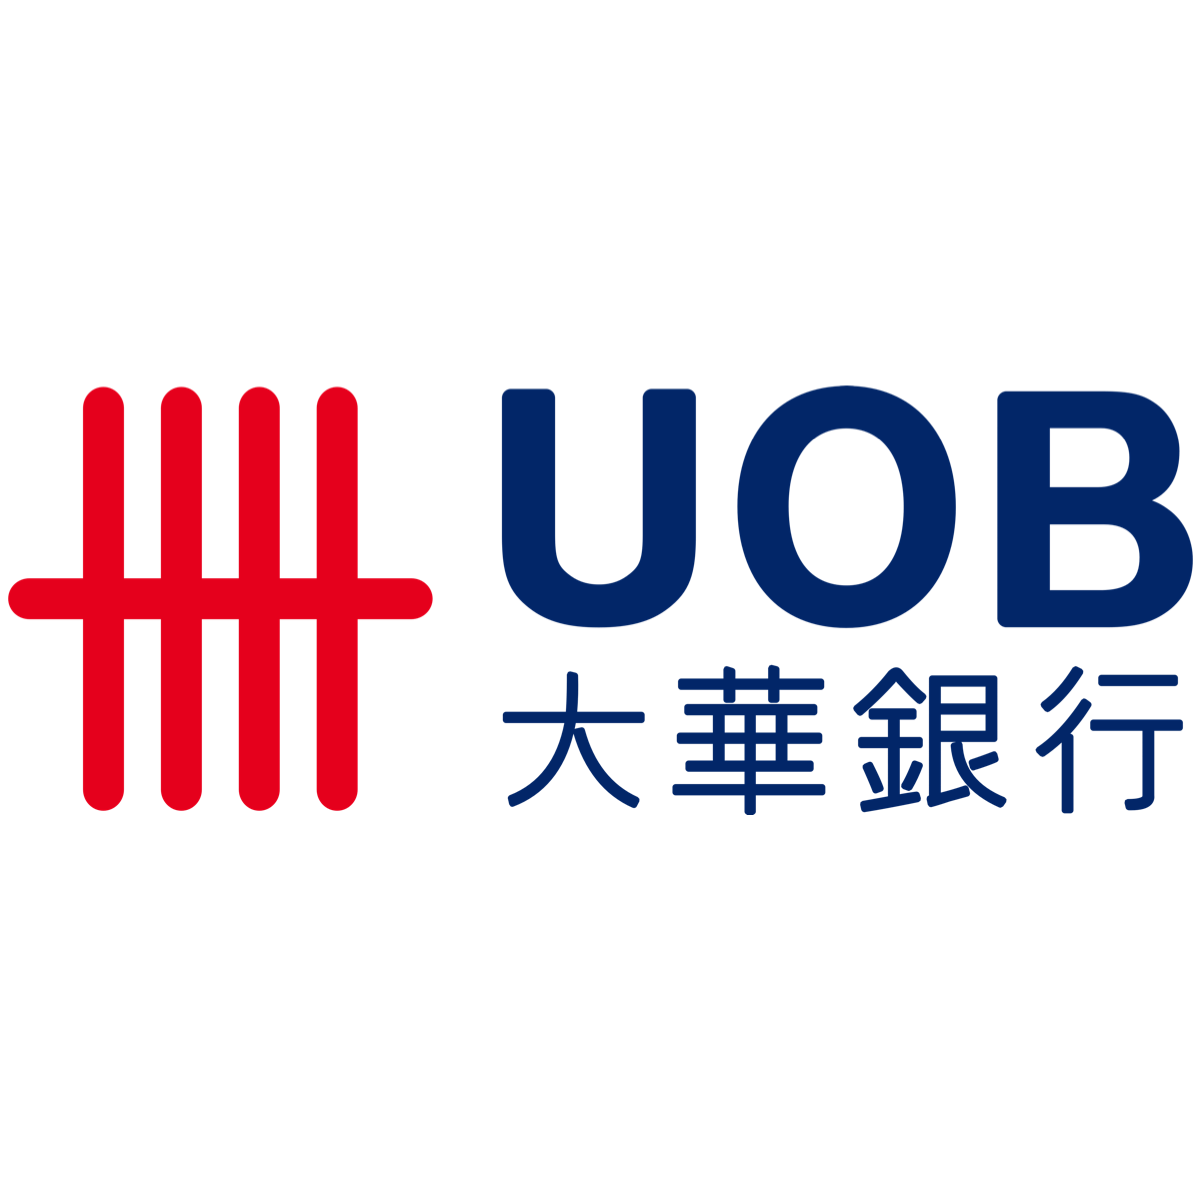 UOB (UOB SP) - DBS Vickers 2018-02-15: Strong Income Offset By Provisions; Dividends Surprised